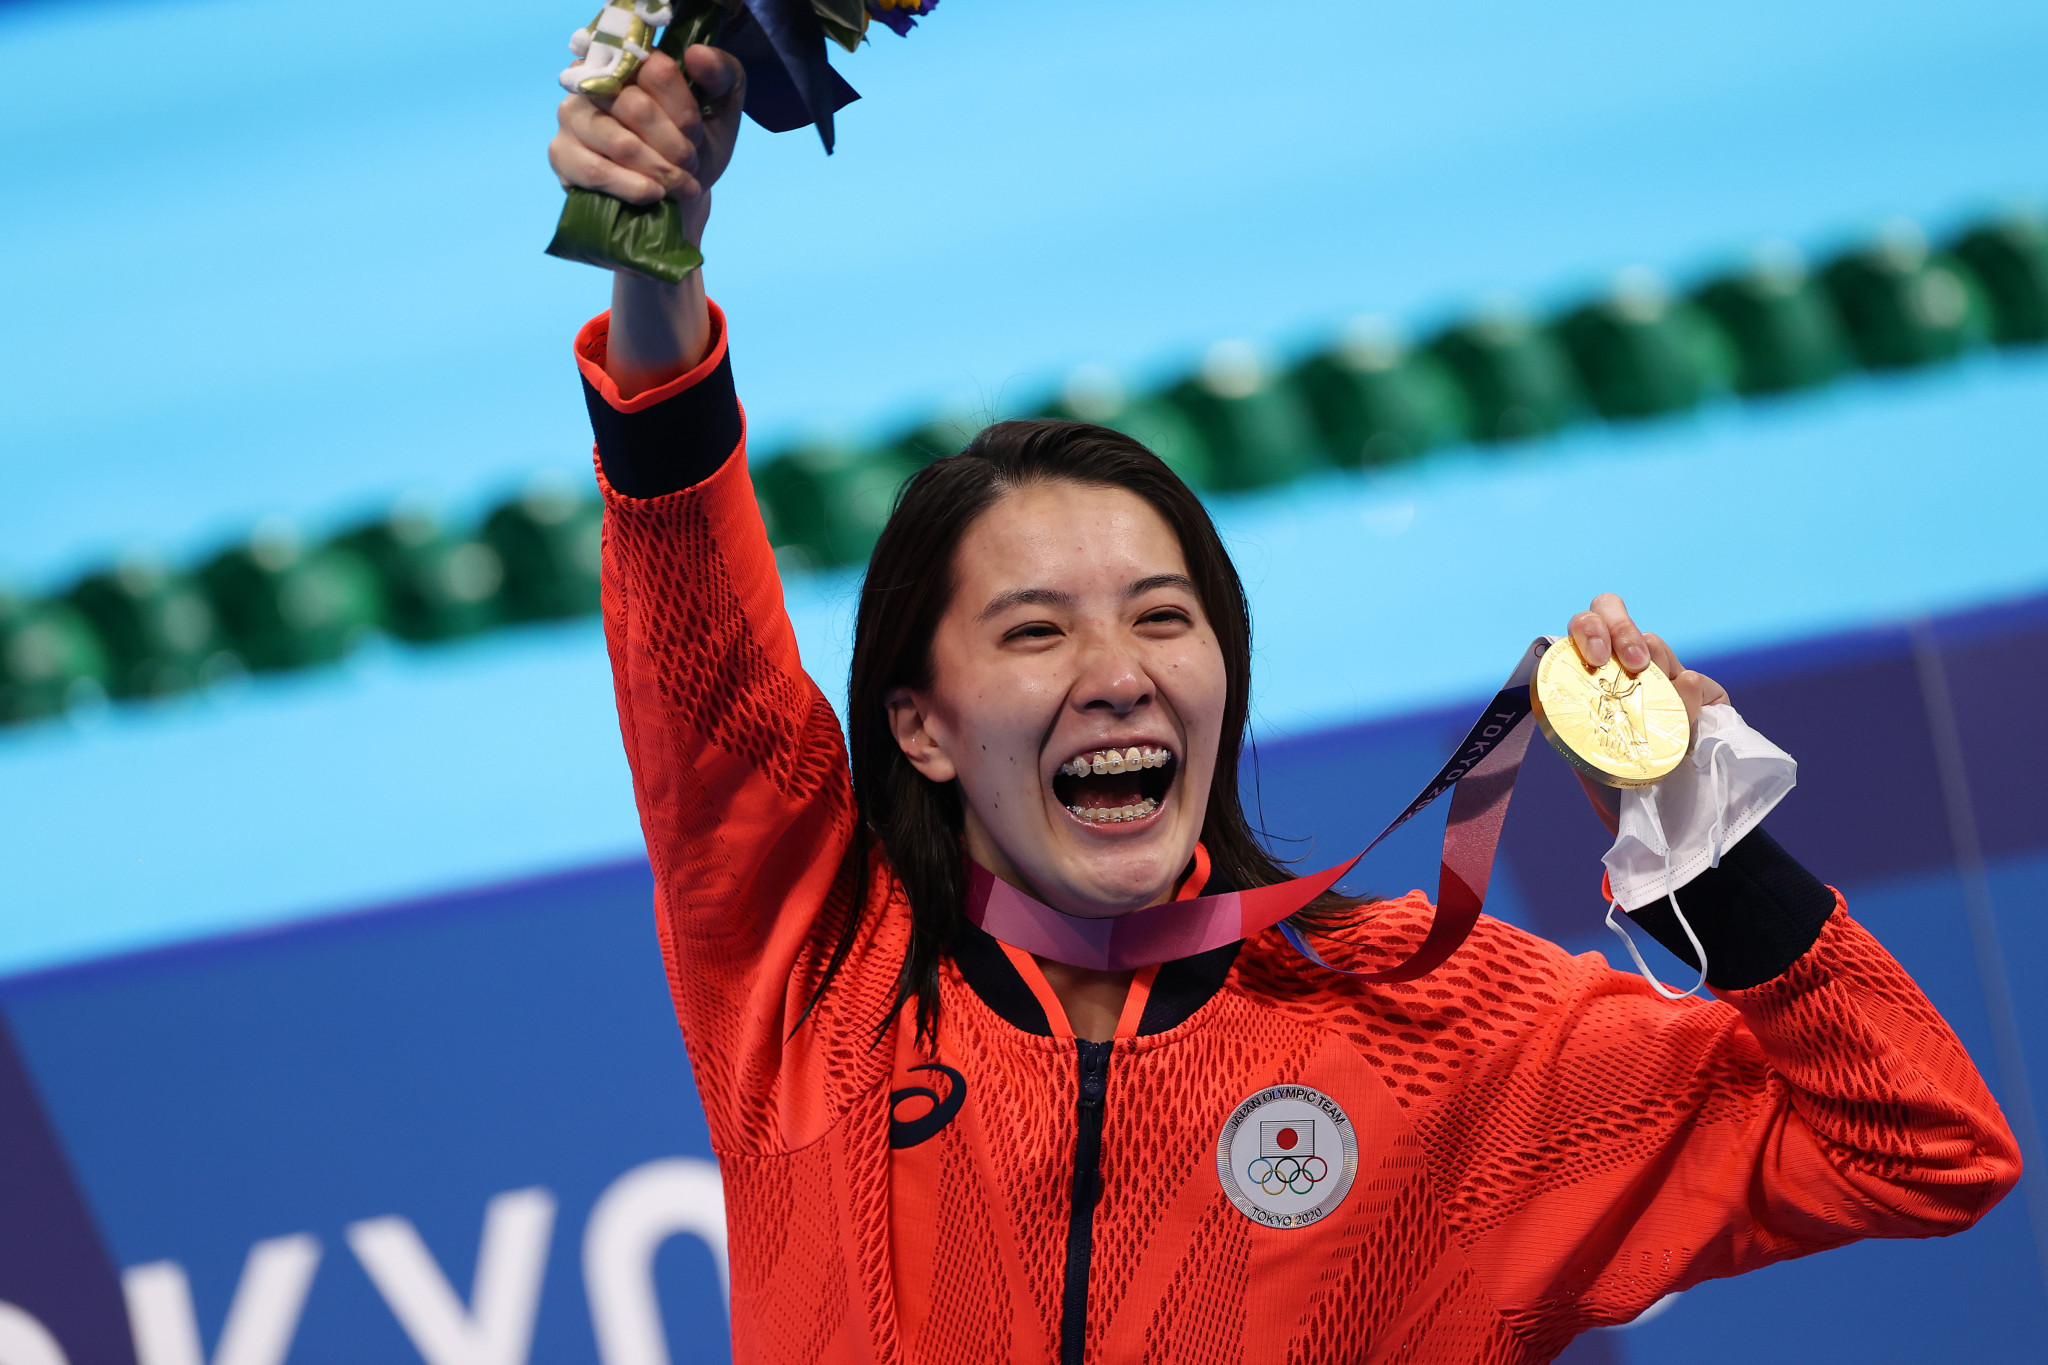 Yui Ohashi won a brilliant gold medal for hosts Japan ©Getty Images